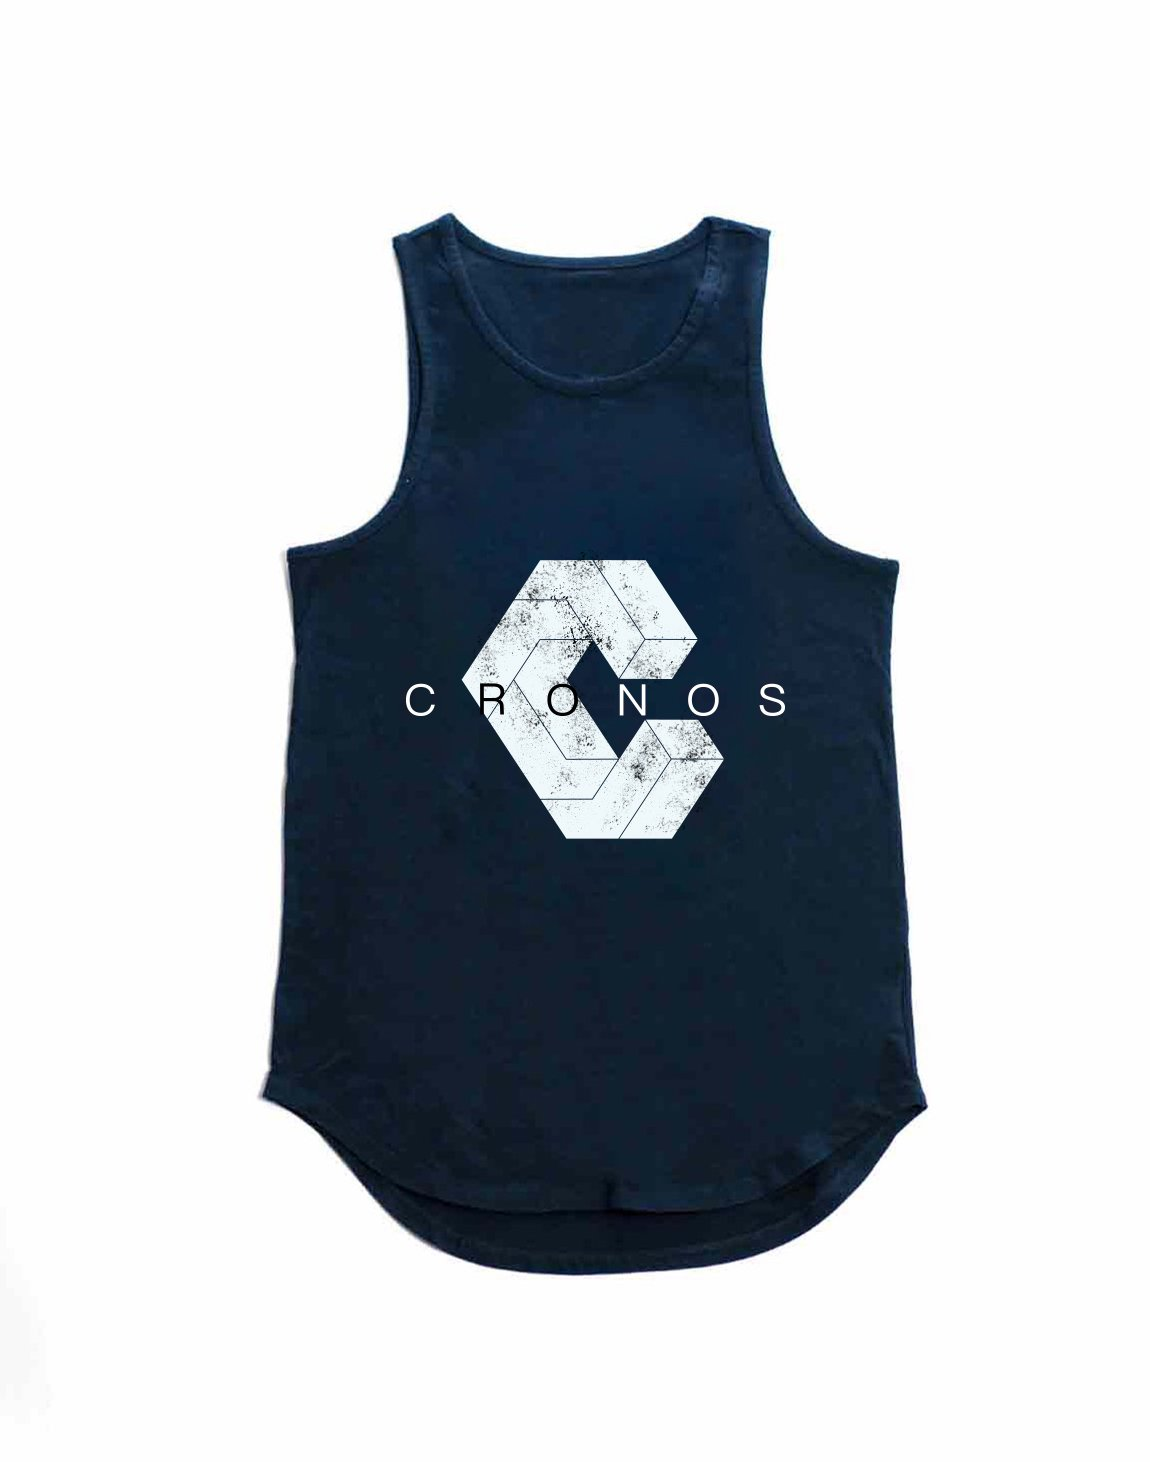 <img class='new_mark_img1' src='https://img.shop-pro.jp/img/new/icons1.gif' style='border:none;display:inline;margin:0px;padding:0px;width:auto;' />CRONOS NEW LOGO TANK TOP 【NAVY】